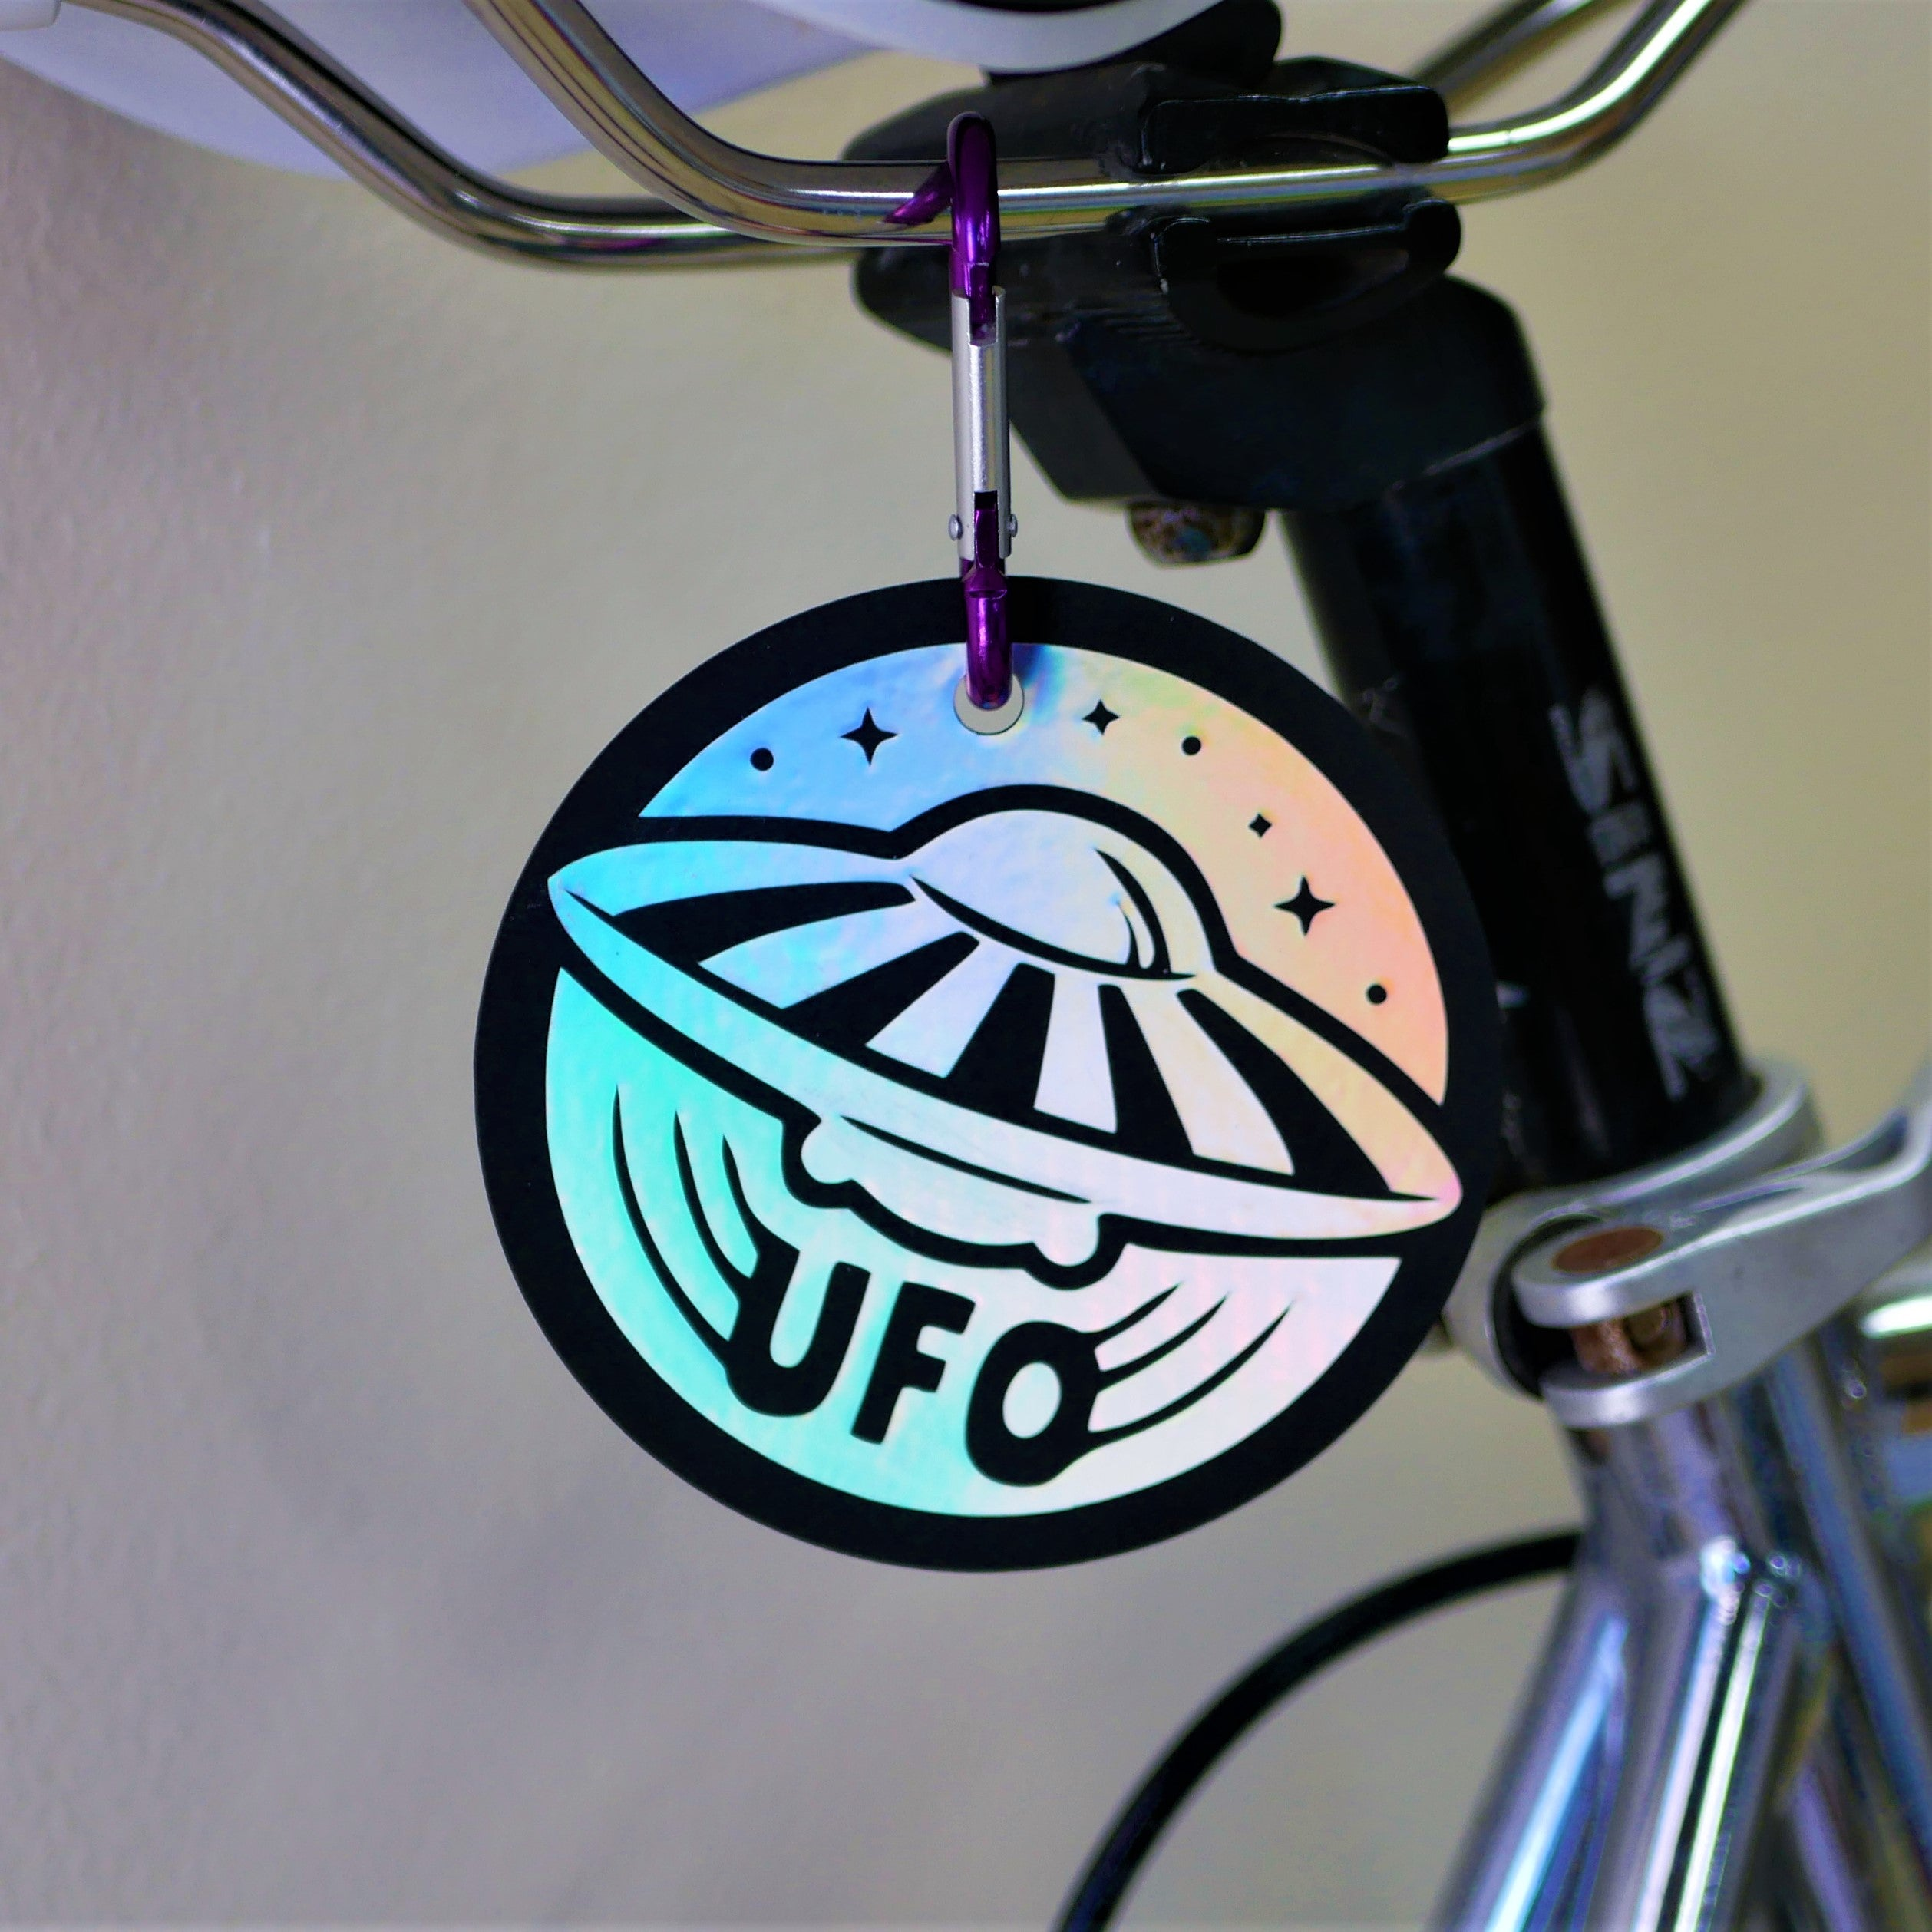 "Limited Edition 3.5x3.5"" UFO Rainbow Holographic Reflector"